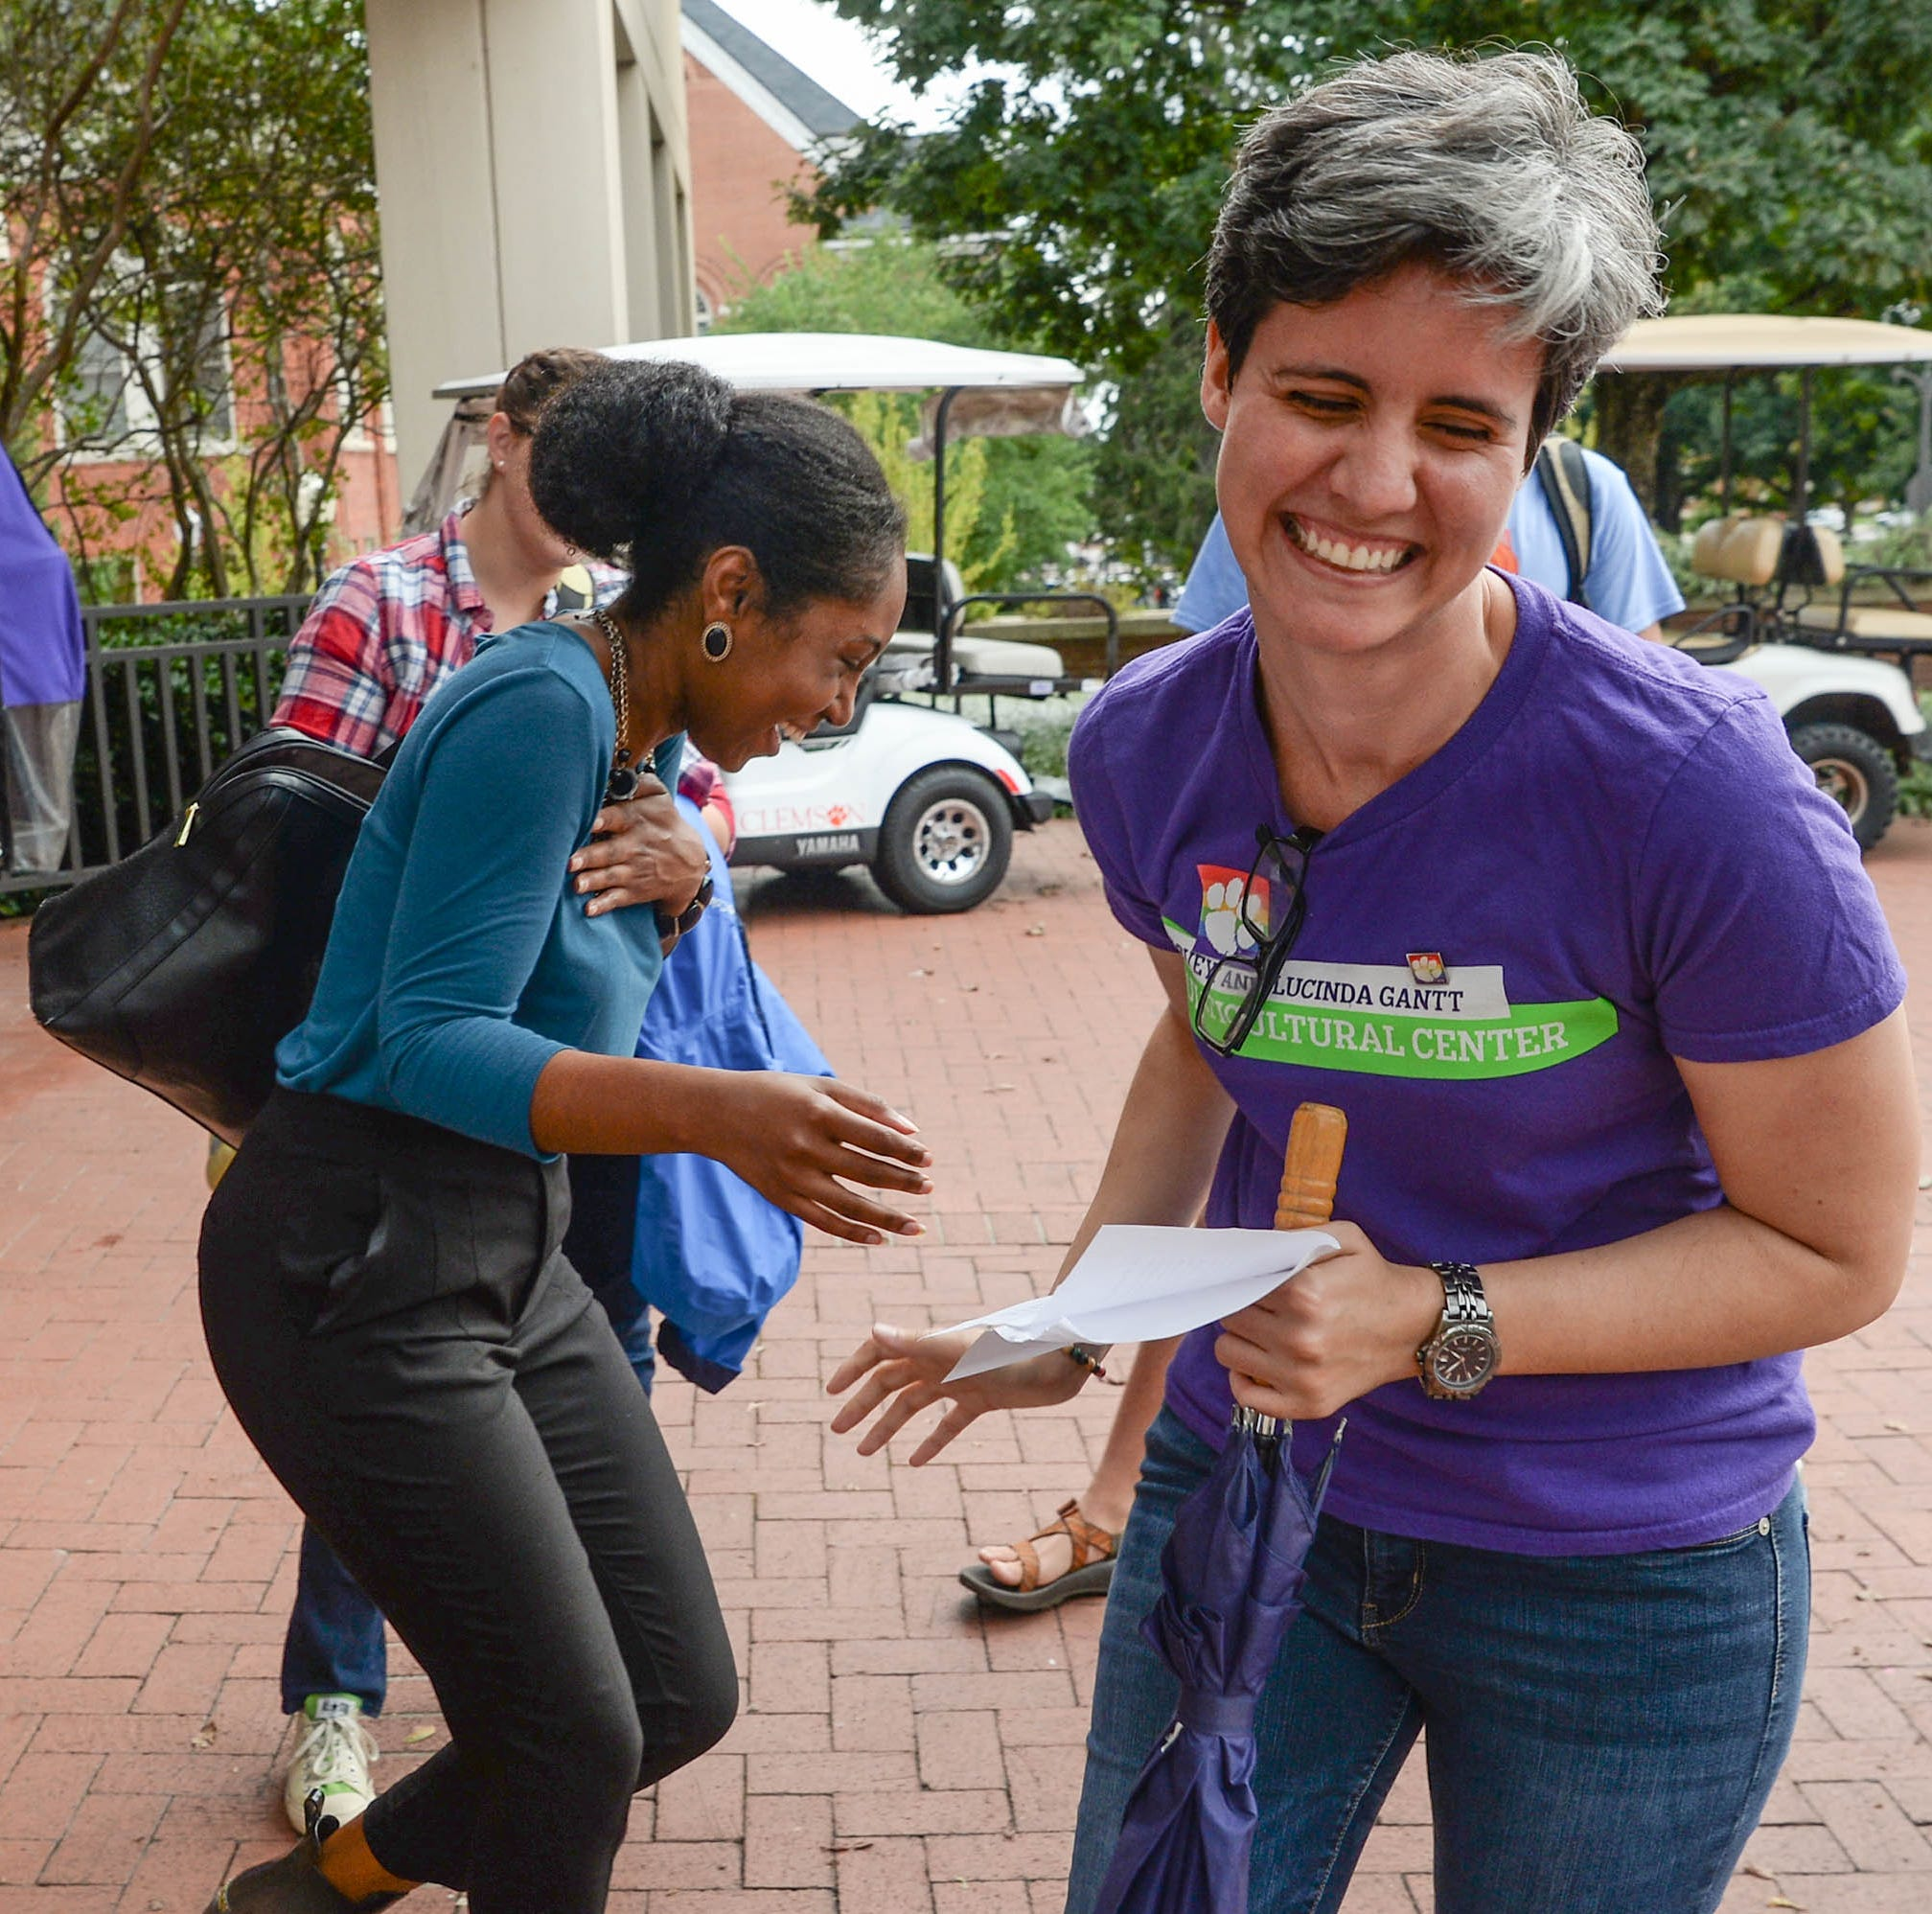 Making space: Clemson's LGBTQ community makes strides but waits for resource center